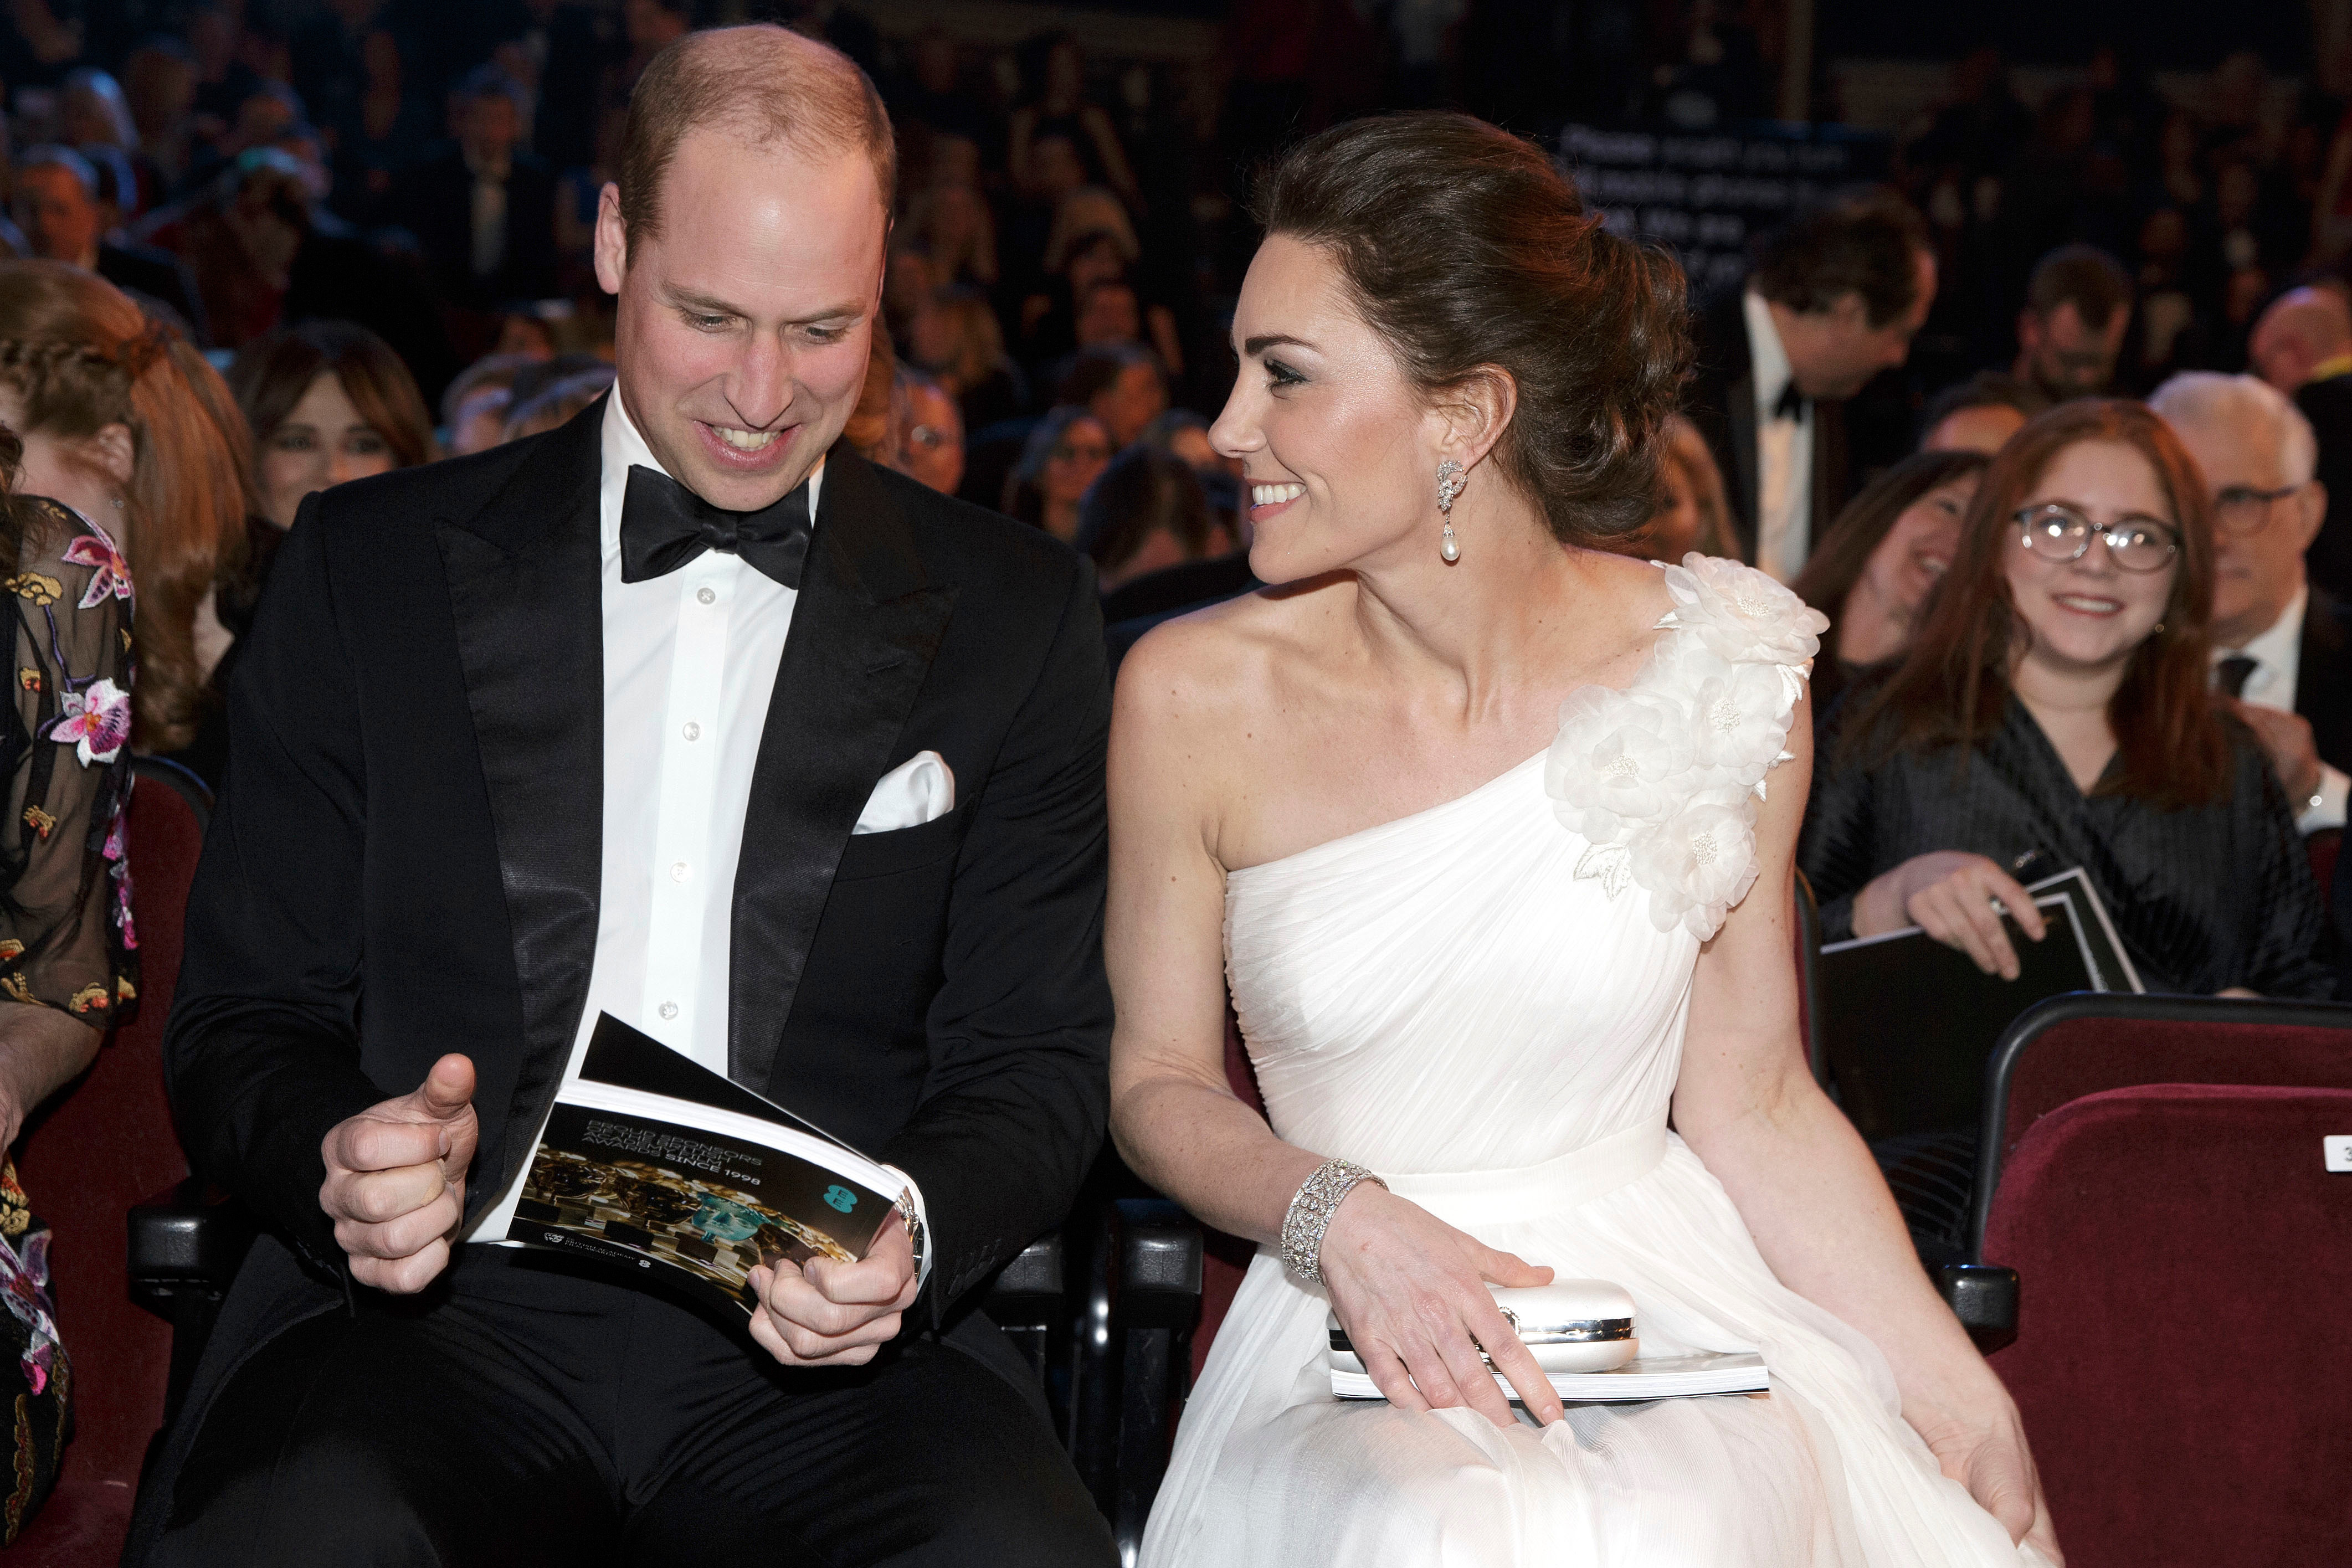 Prince William and Duchess Kate sit next to each other at the 72nd British Academy Film Awards in London on Feb. 10, 2019.